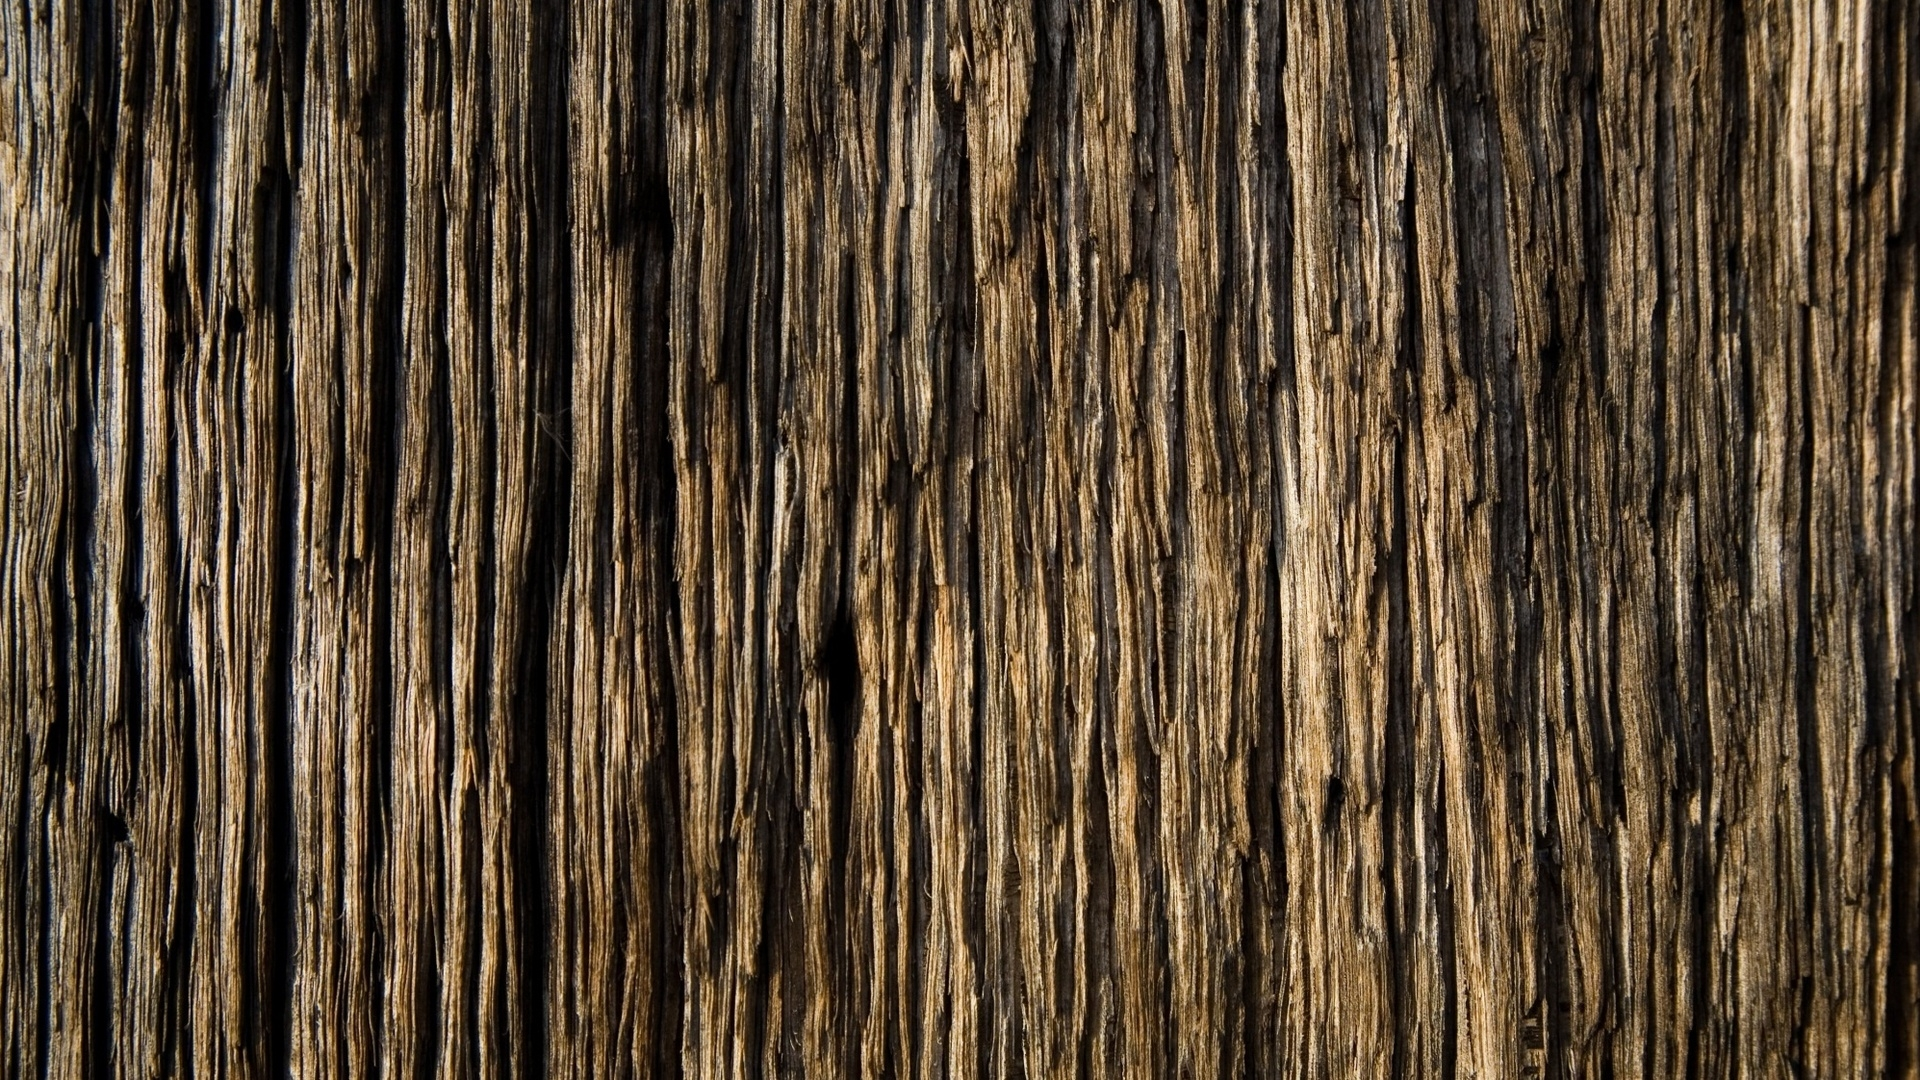 bark-wood-background-http-www-u-org-bark-wood-background-wallpaper-wp3602964